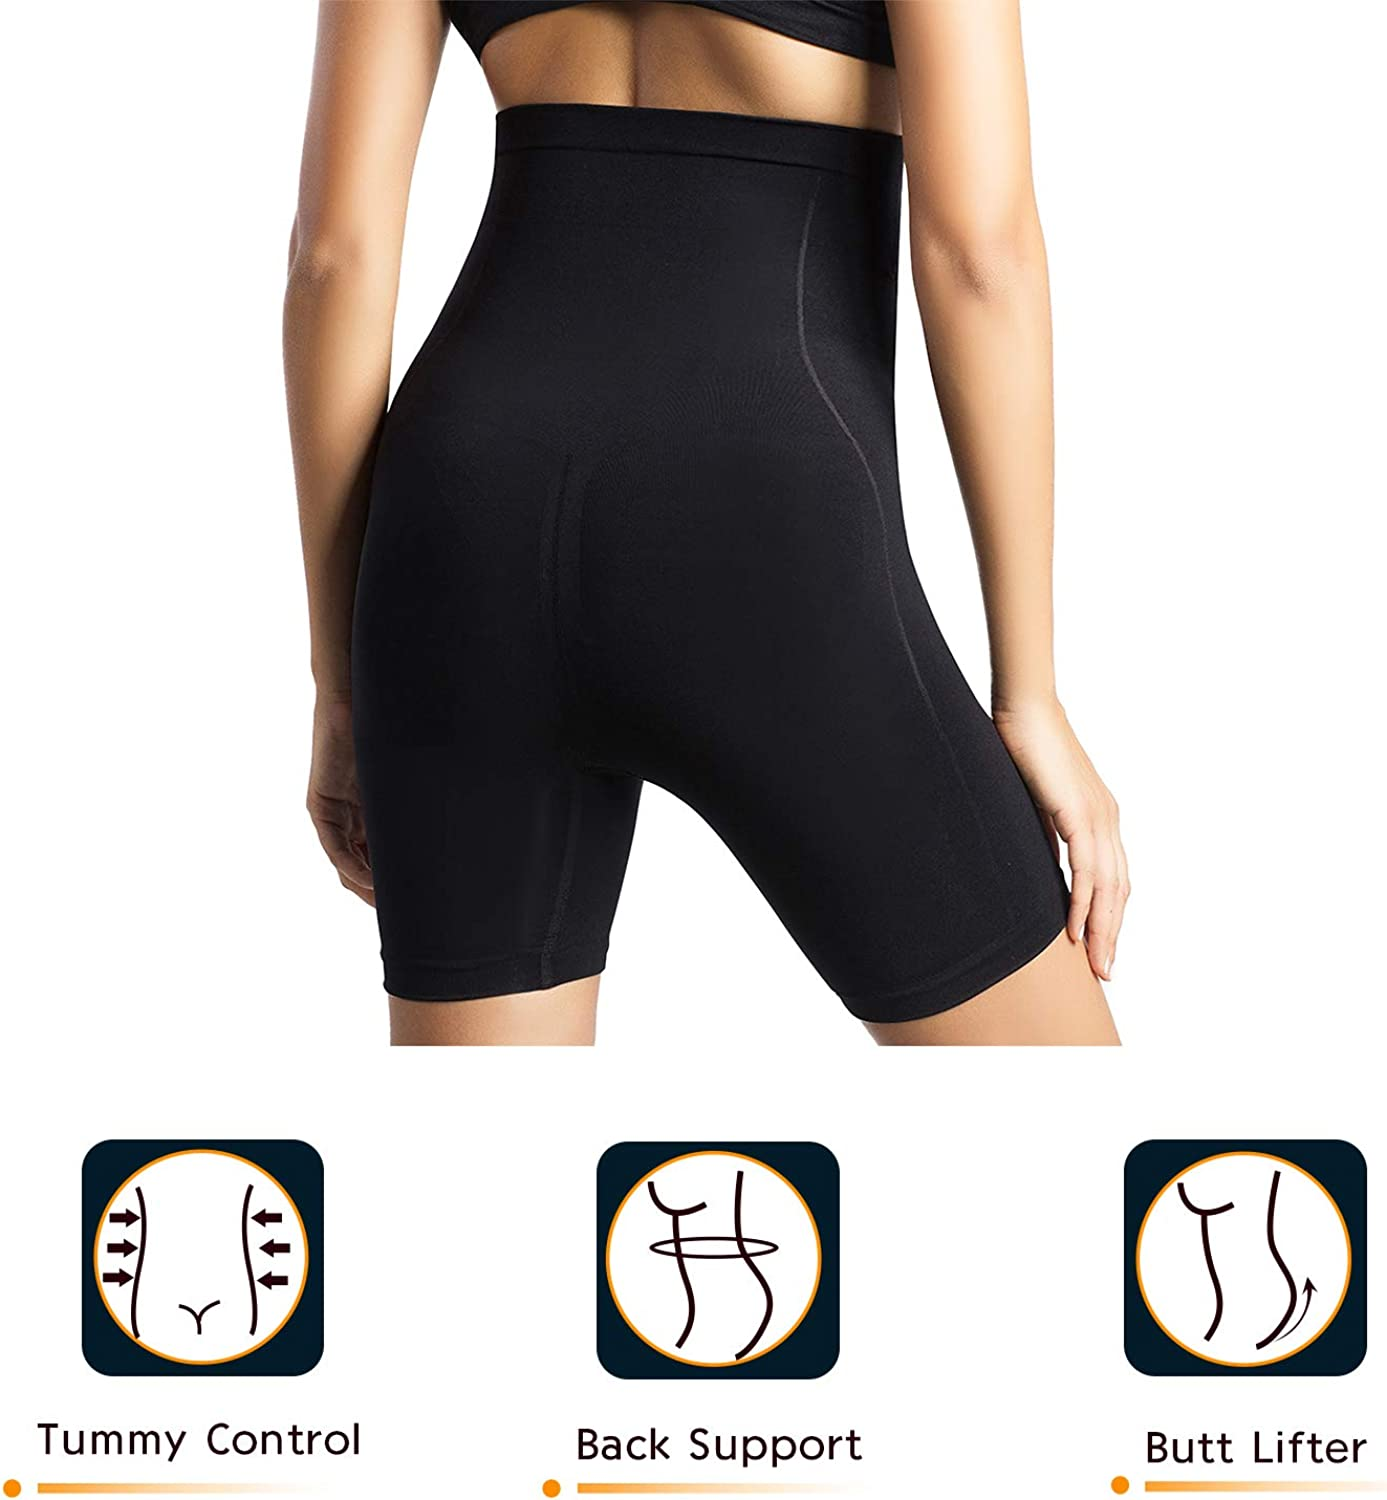 +MD Seamless Women Invisable High Waist Tummy Control Butt Lifter Panties Strapless Body Shaper Shorts Thigh Slimmer